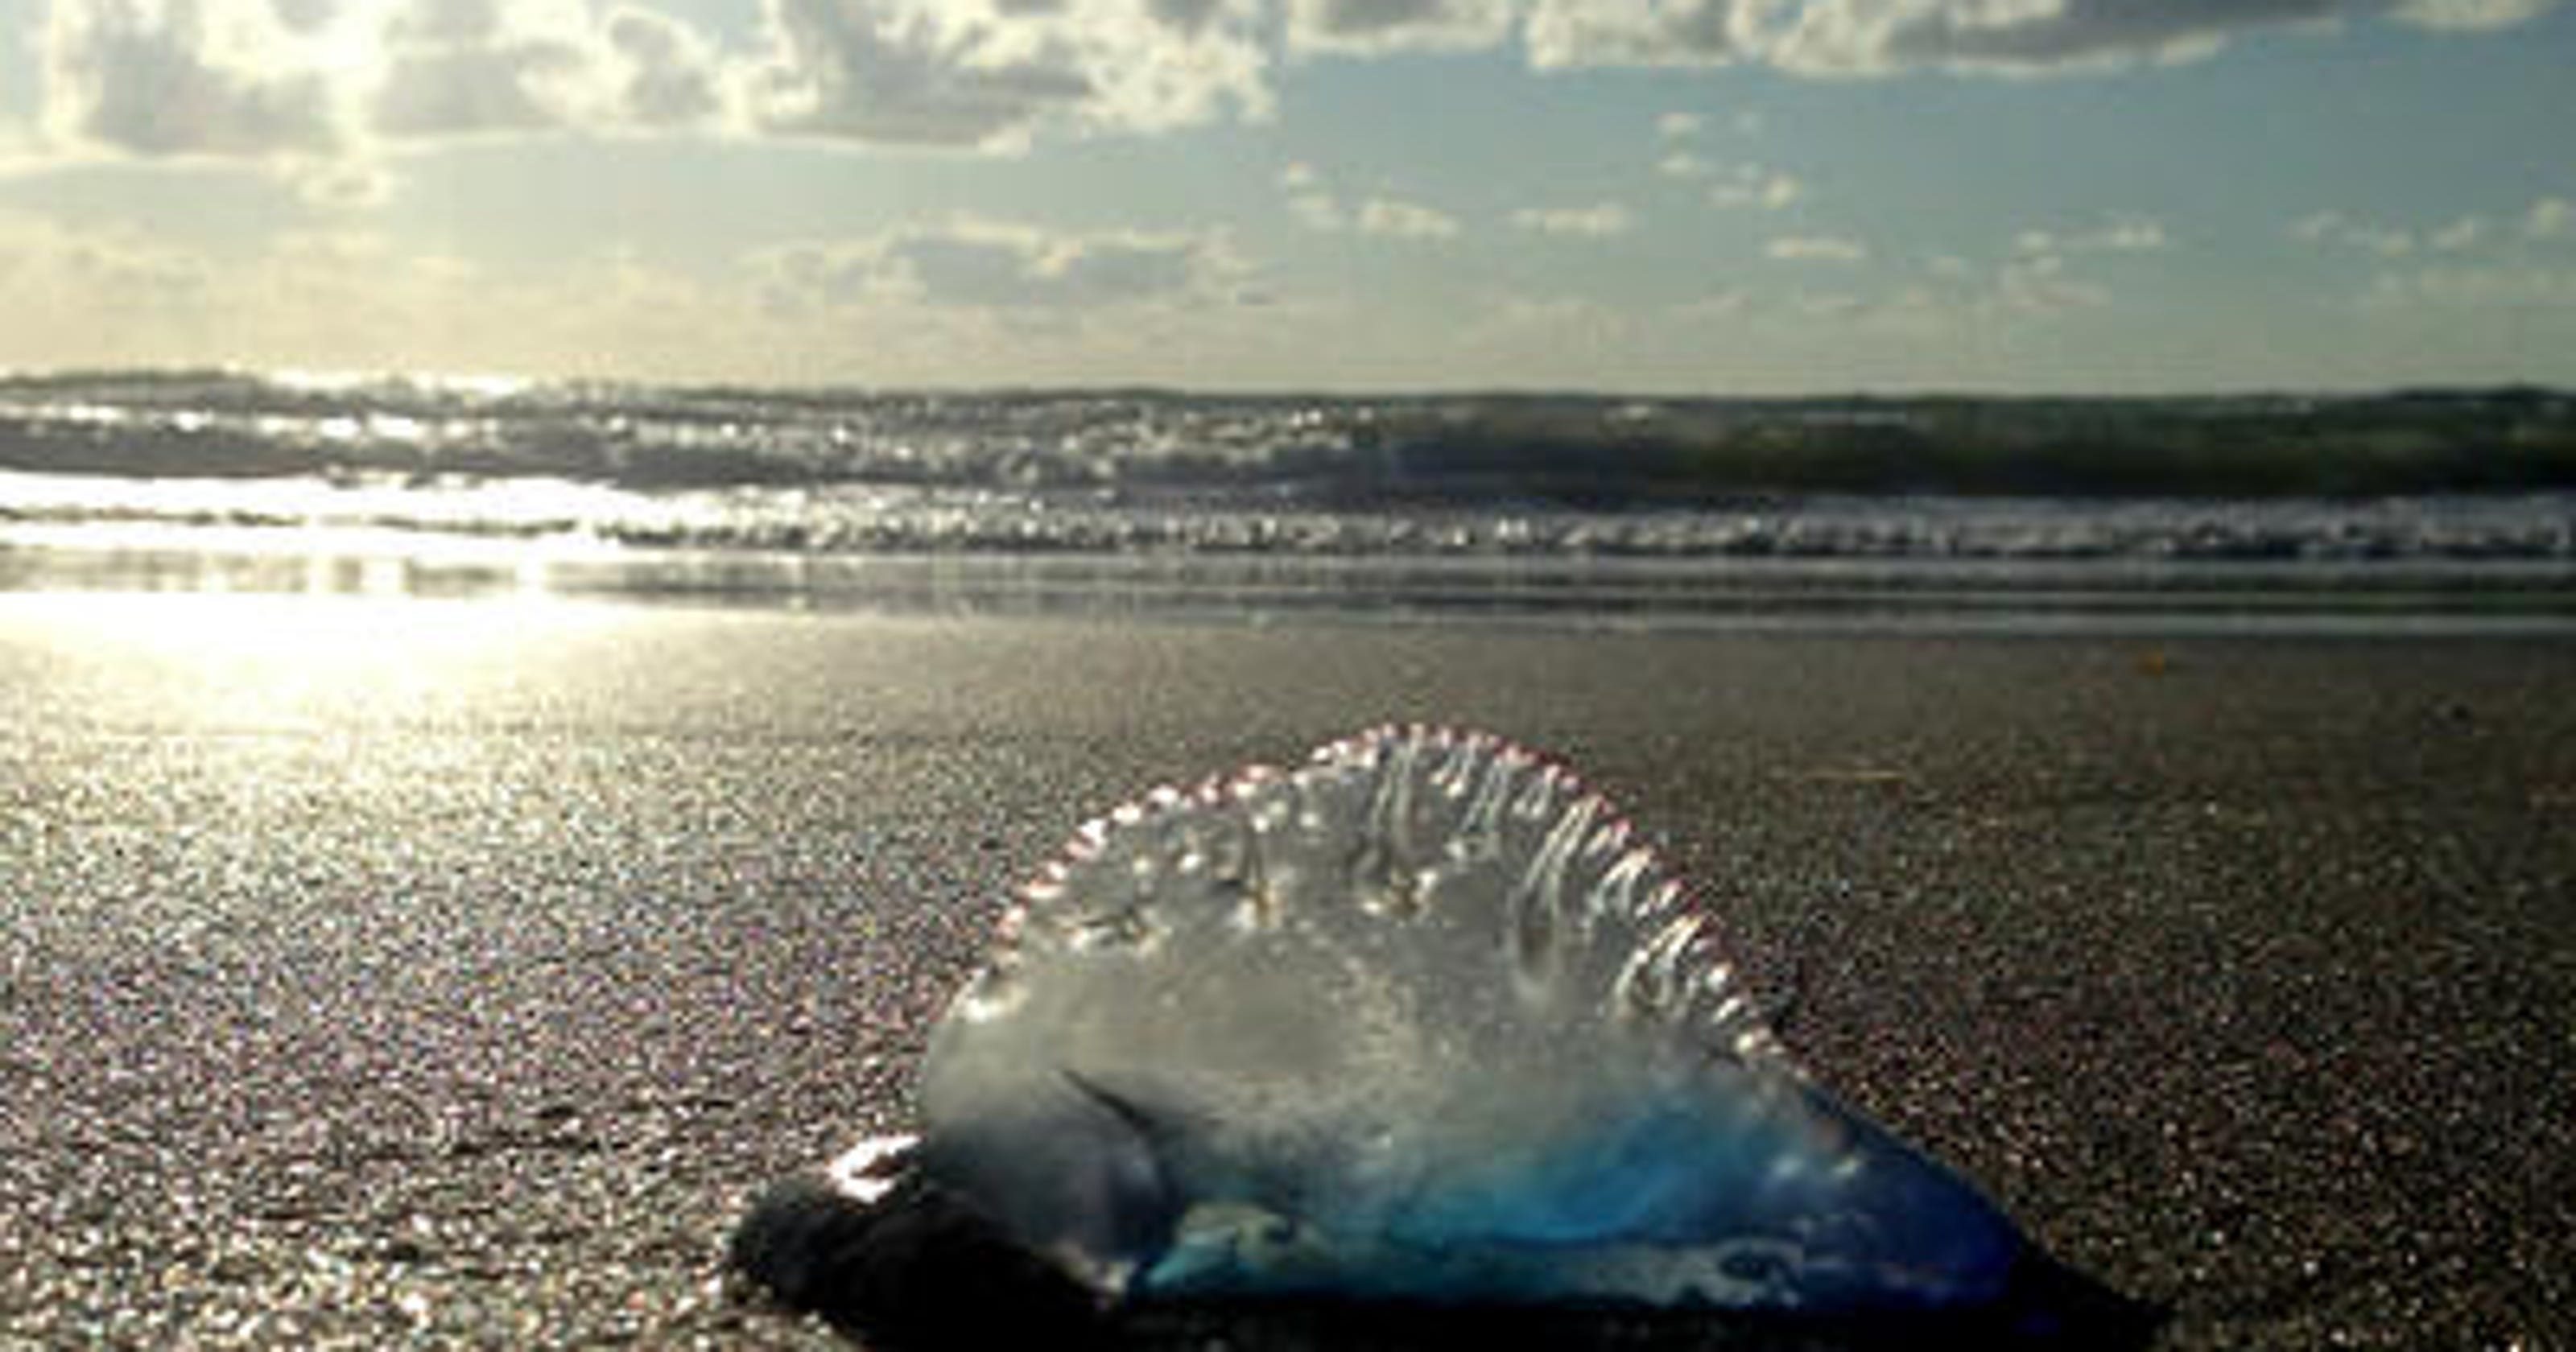 Man o' war stings reported at Brevard beaches